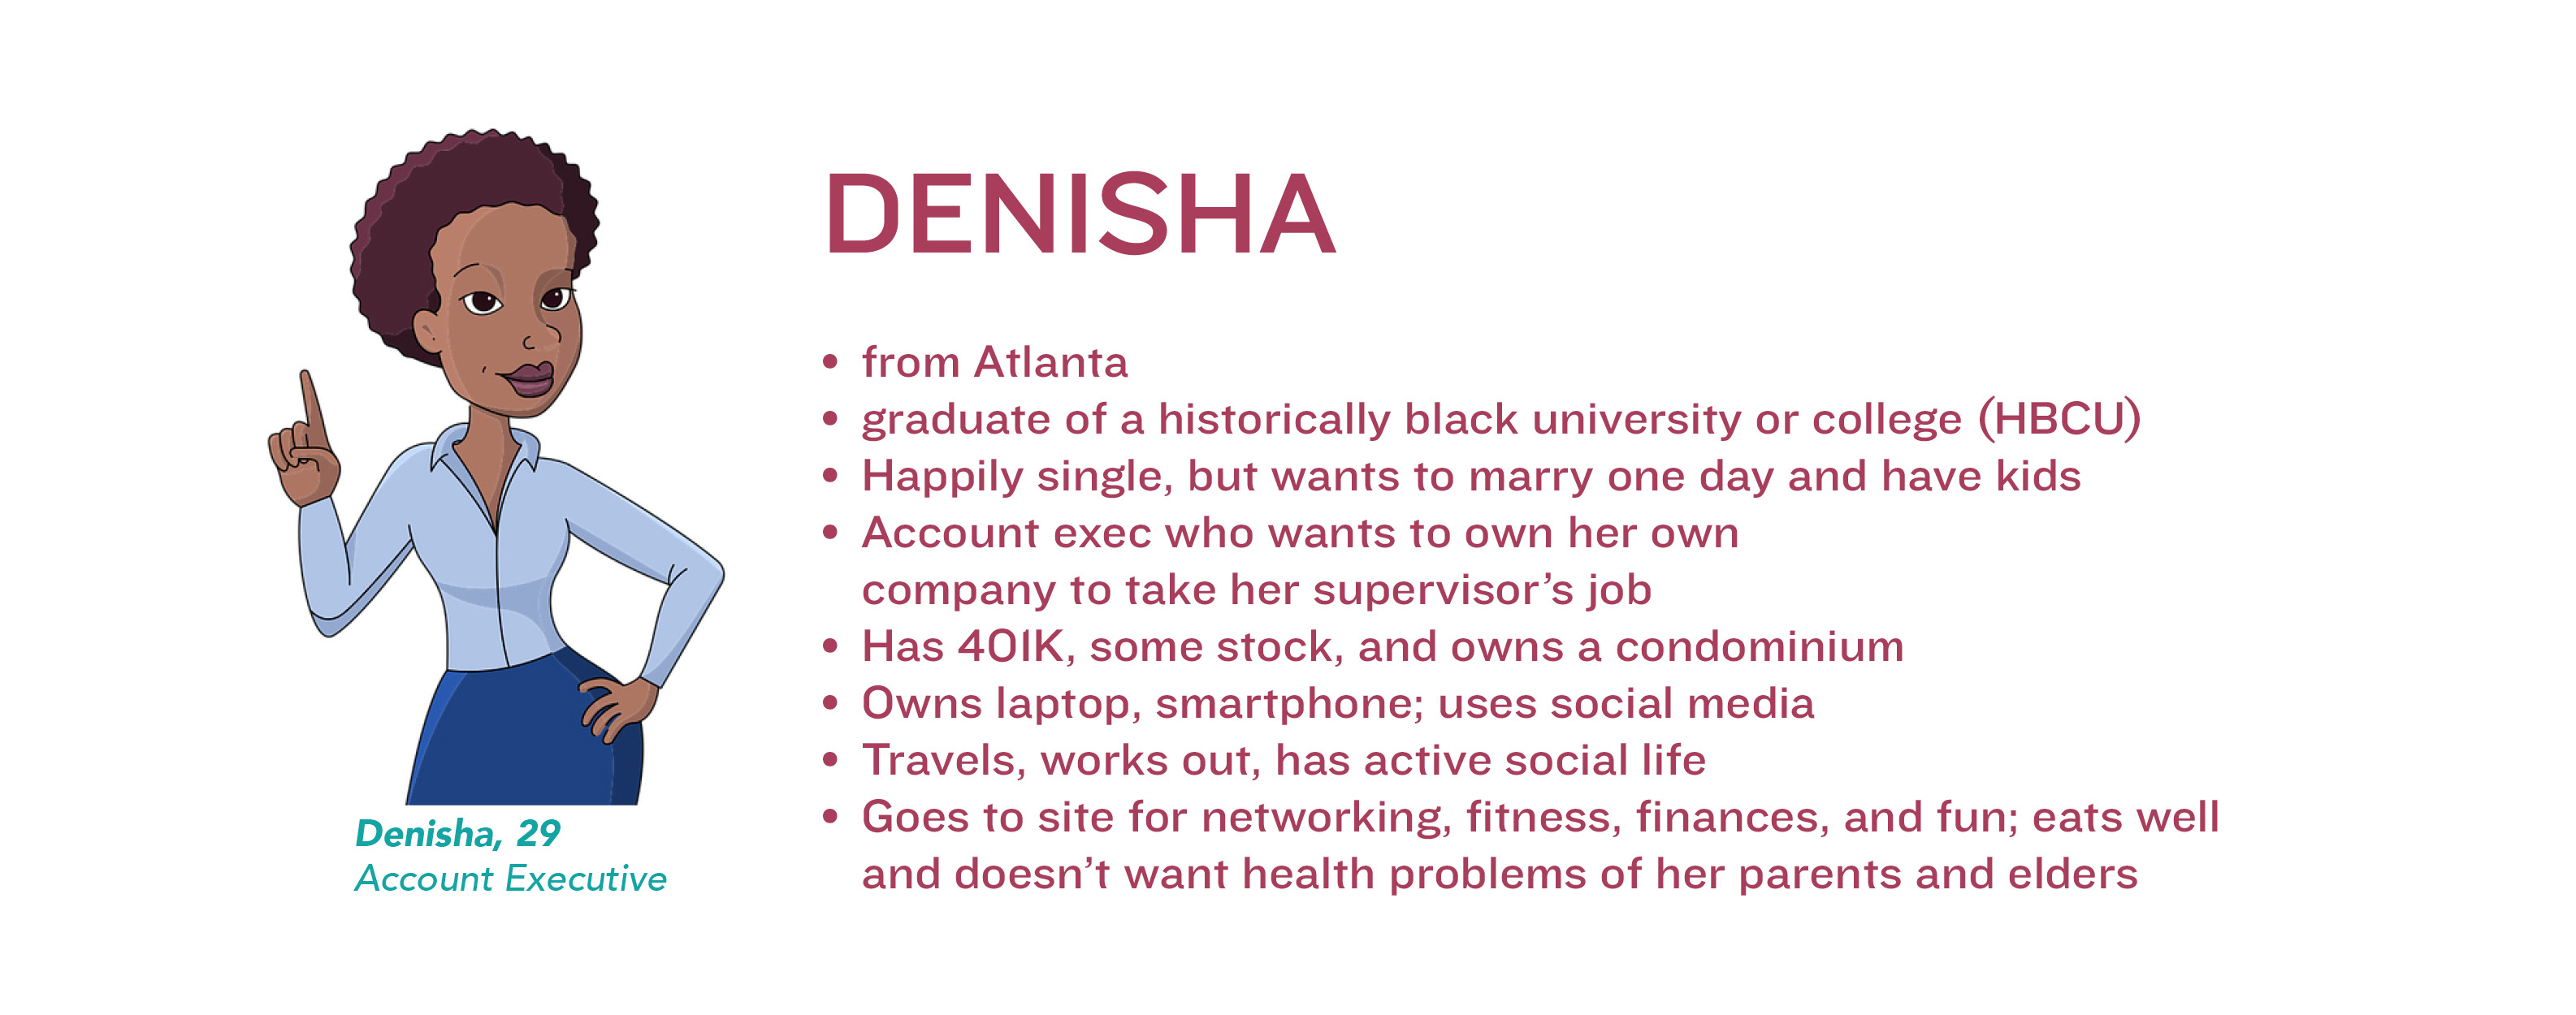 This user persona portrays a young account executive named Denisha. She is 29, from Atlanta and a graduate of an HBCU. She is happily single but wants kids one day, has a 401K, a condo and some stock as well as a laptop and smart devices. She works out and goes to the website for networking, fitness, finances and fun. She eats well and stays healthy to avoid health problems.